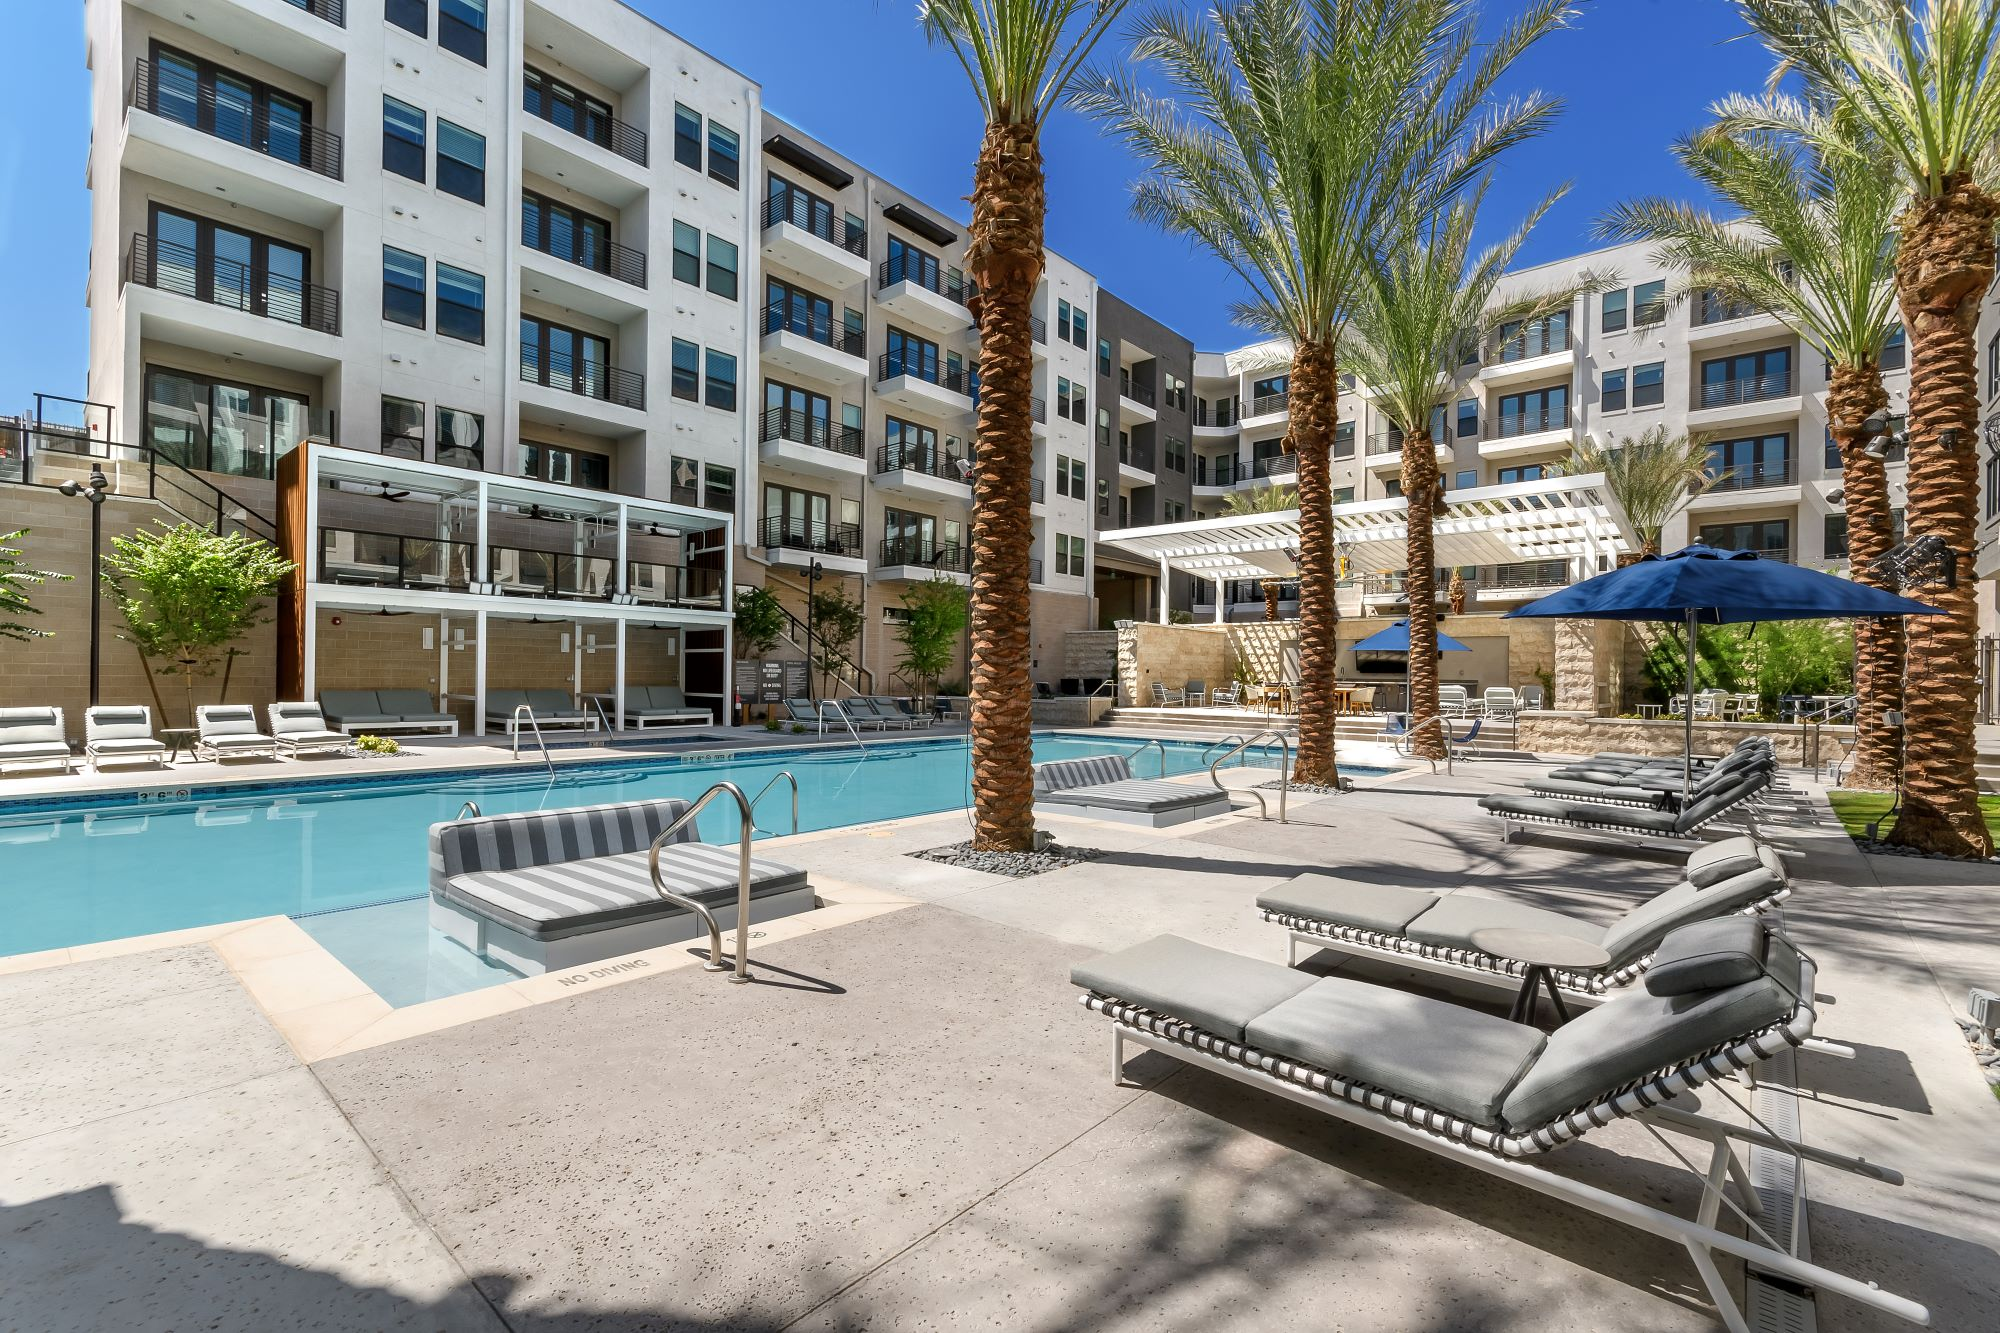 resort-style pool and spa area with lounge chairs at Auric Symphony Park